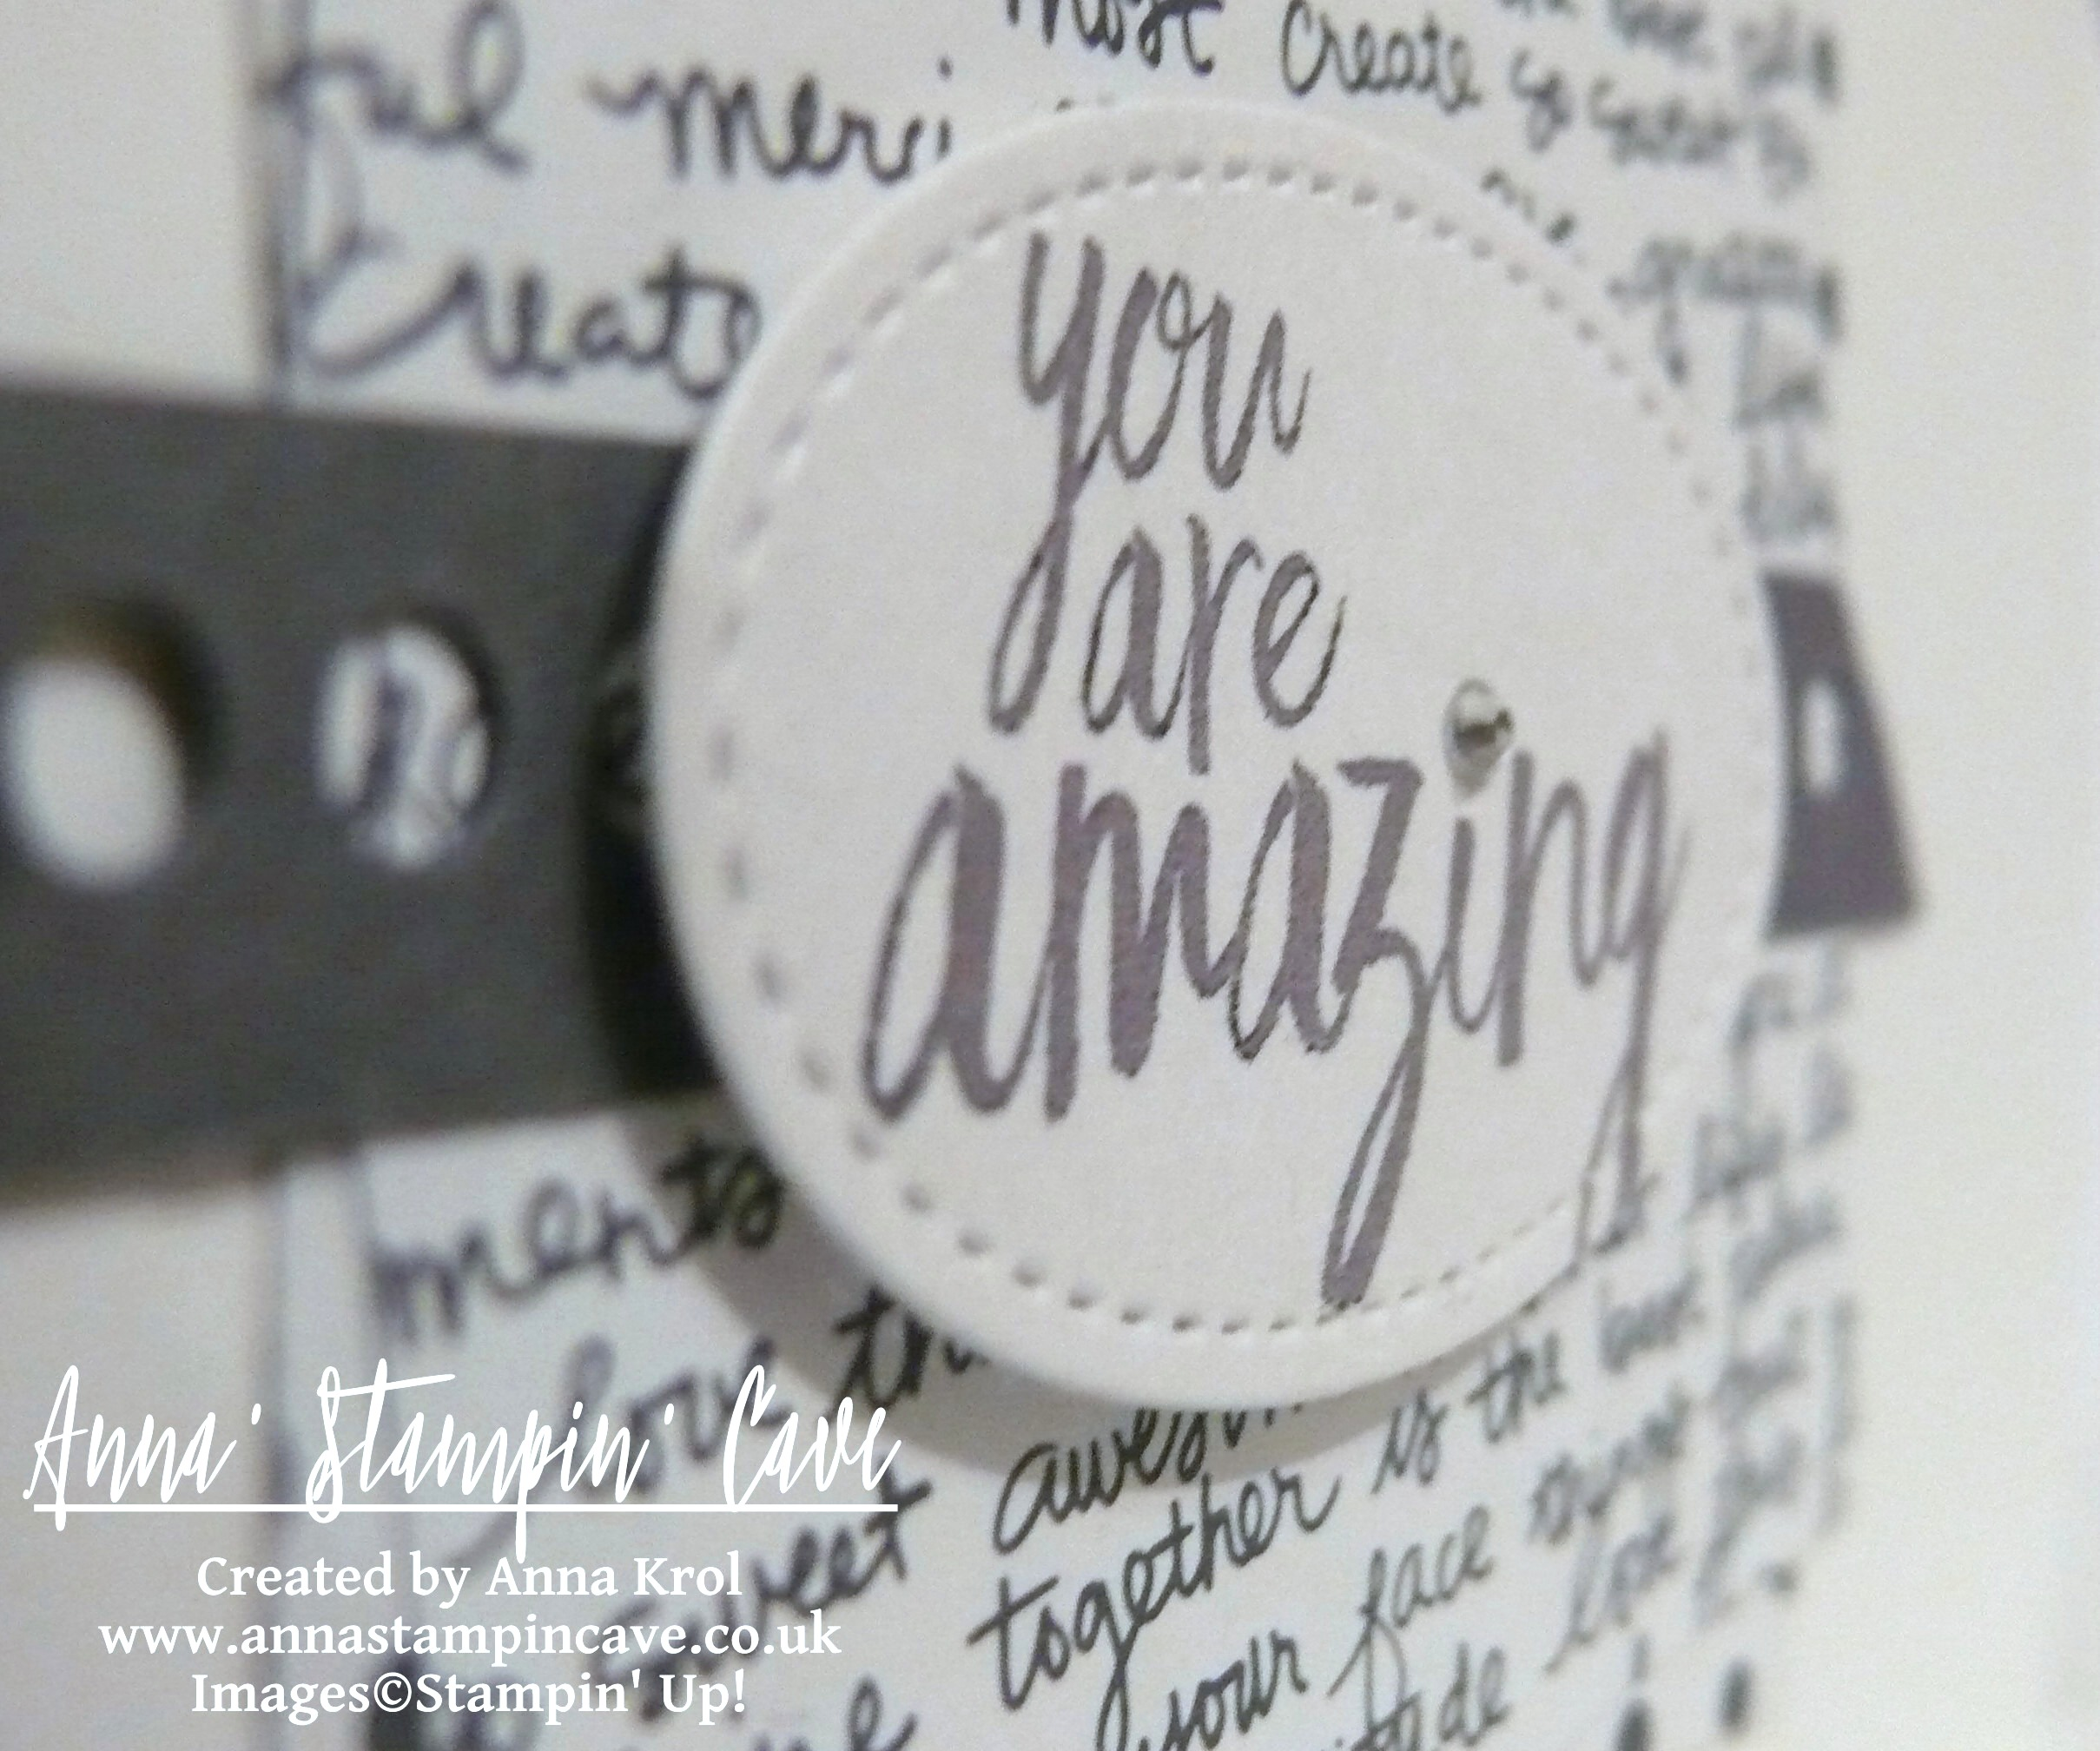 Anna' Stampin' Cave - Stampin' Up! All Things Thanks Stamp Set CAS Card You Are Amazing